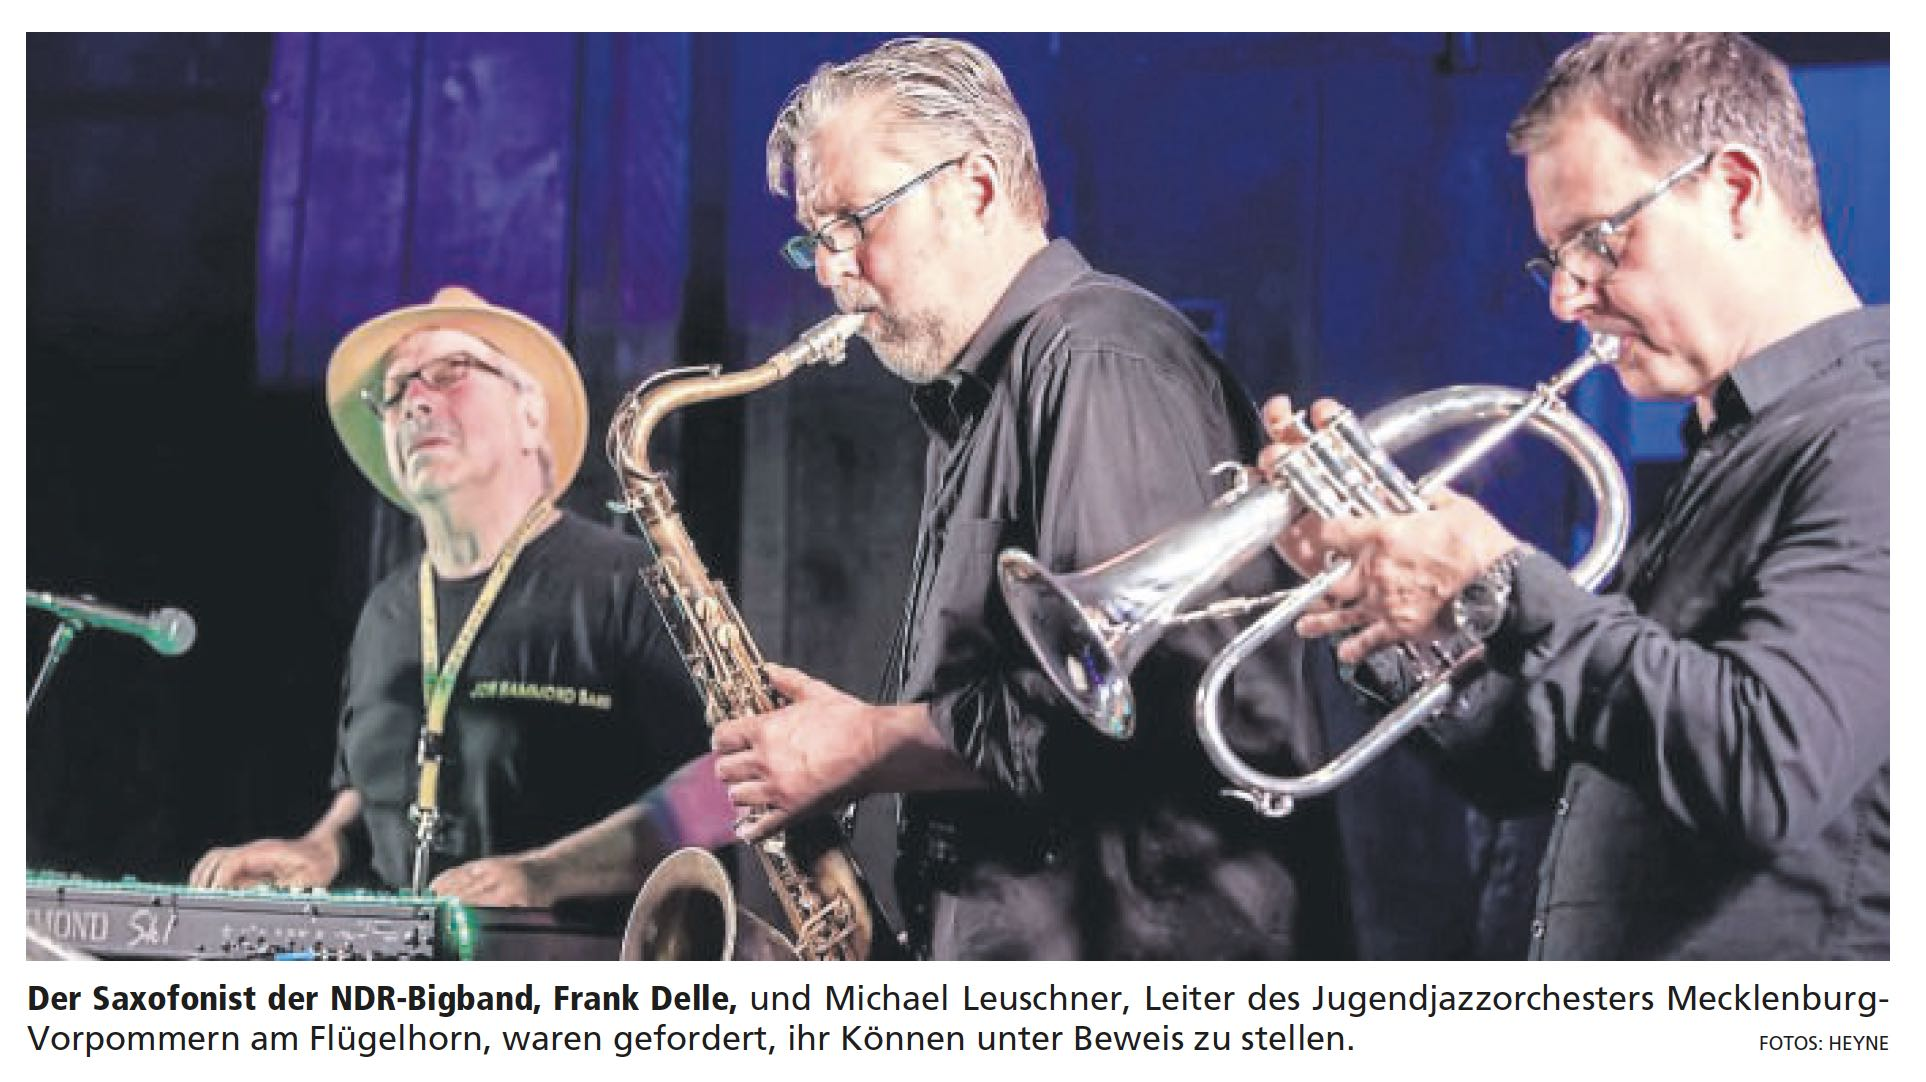 Jon Hammond Band - live at JustJazz Rotenburg